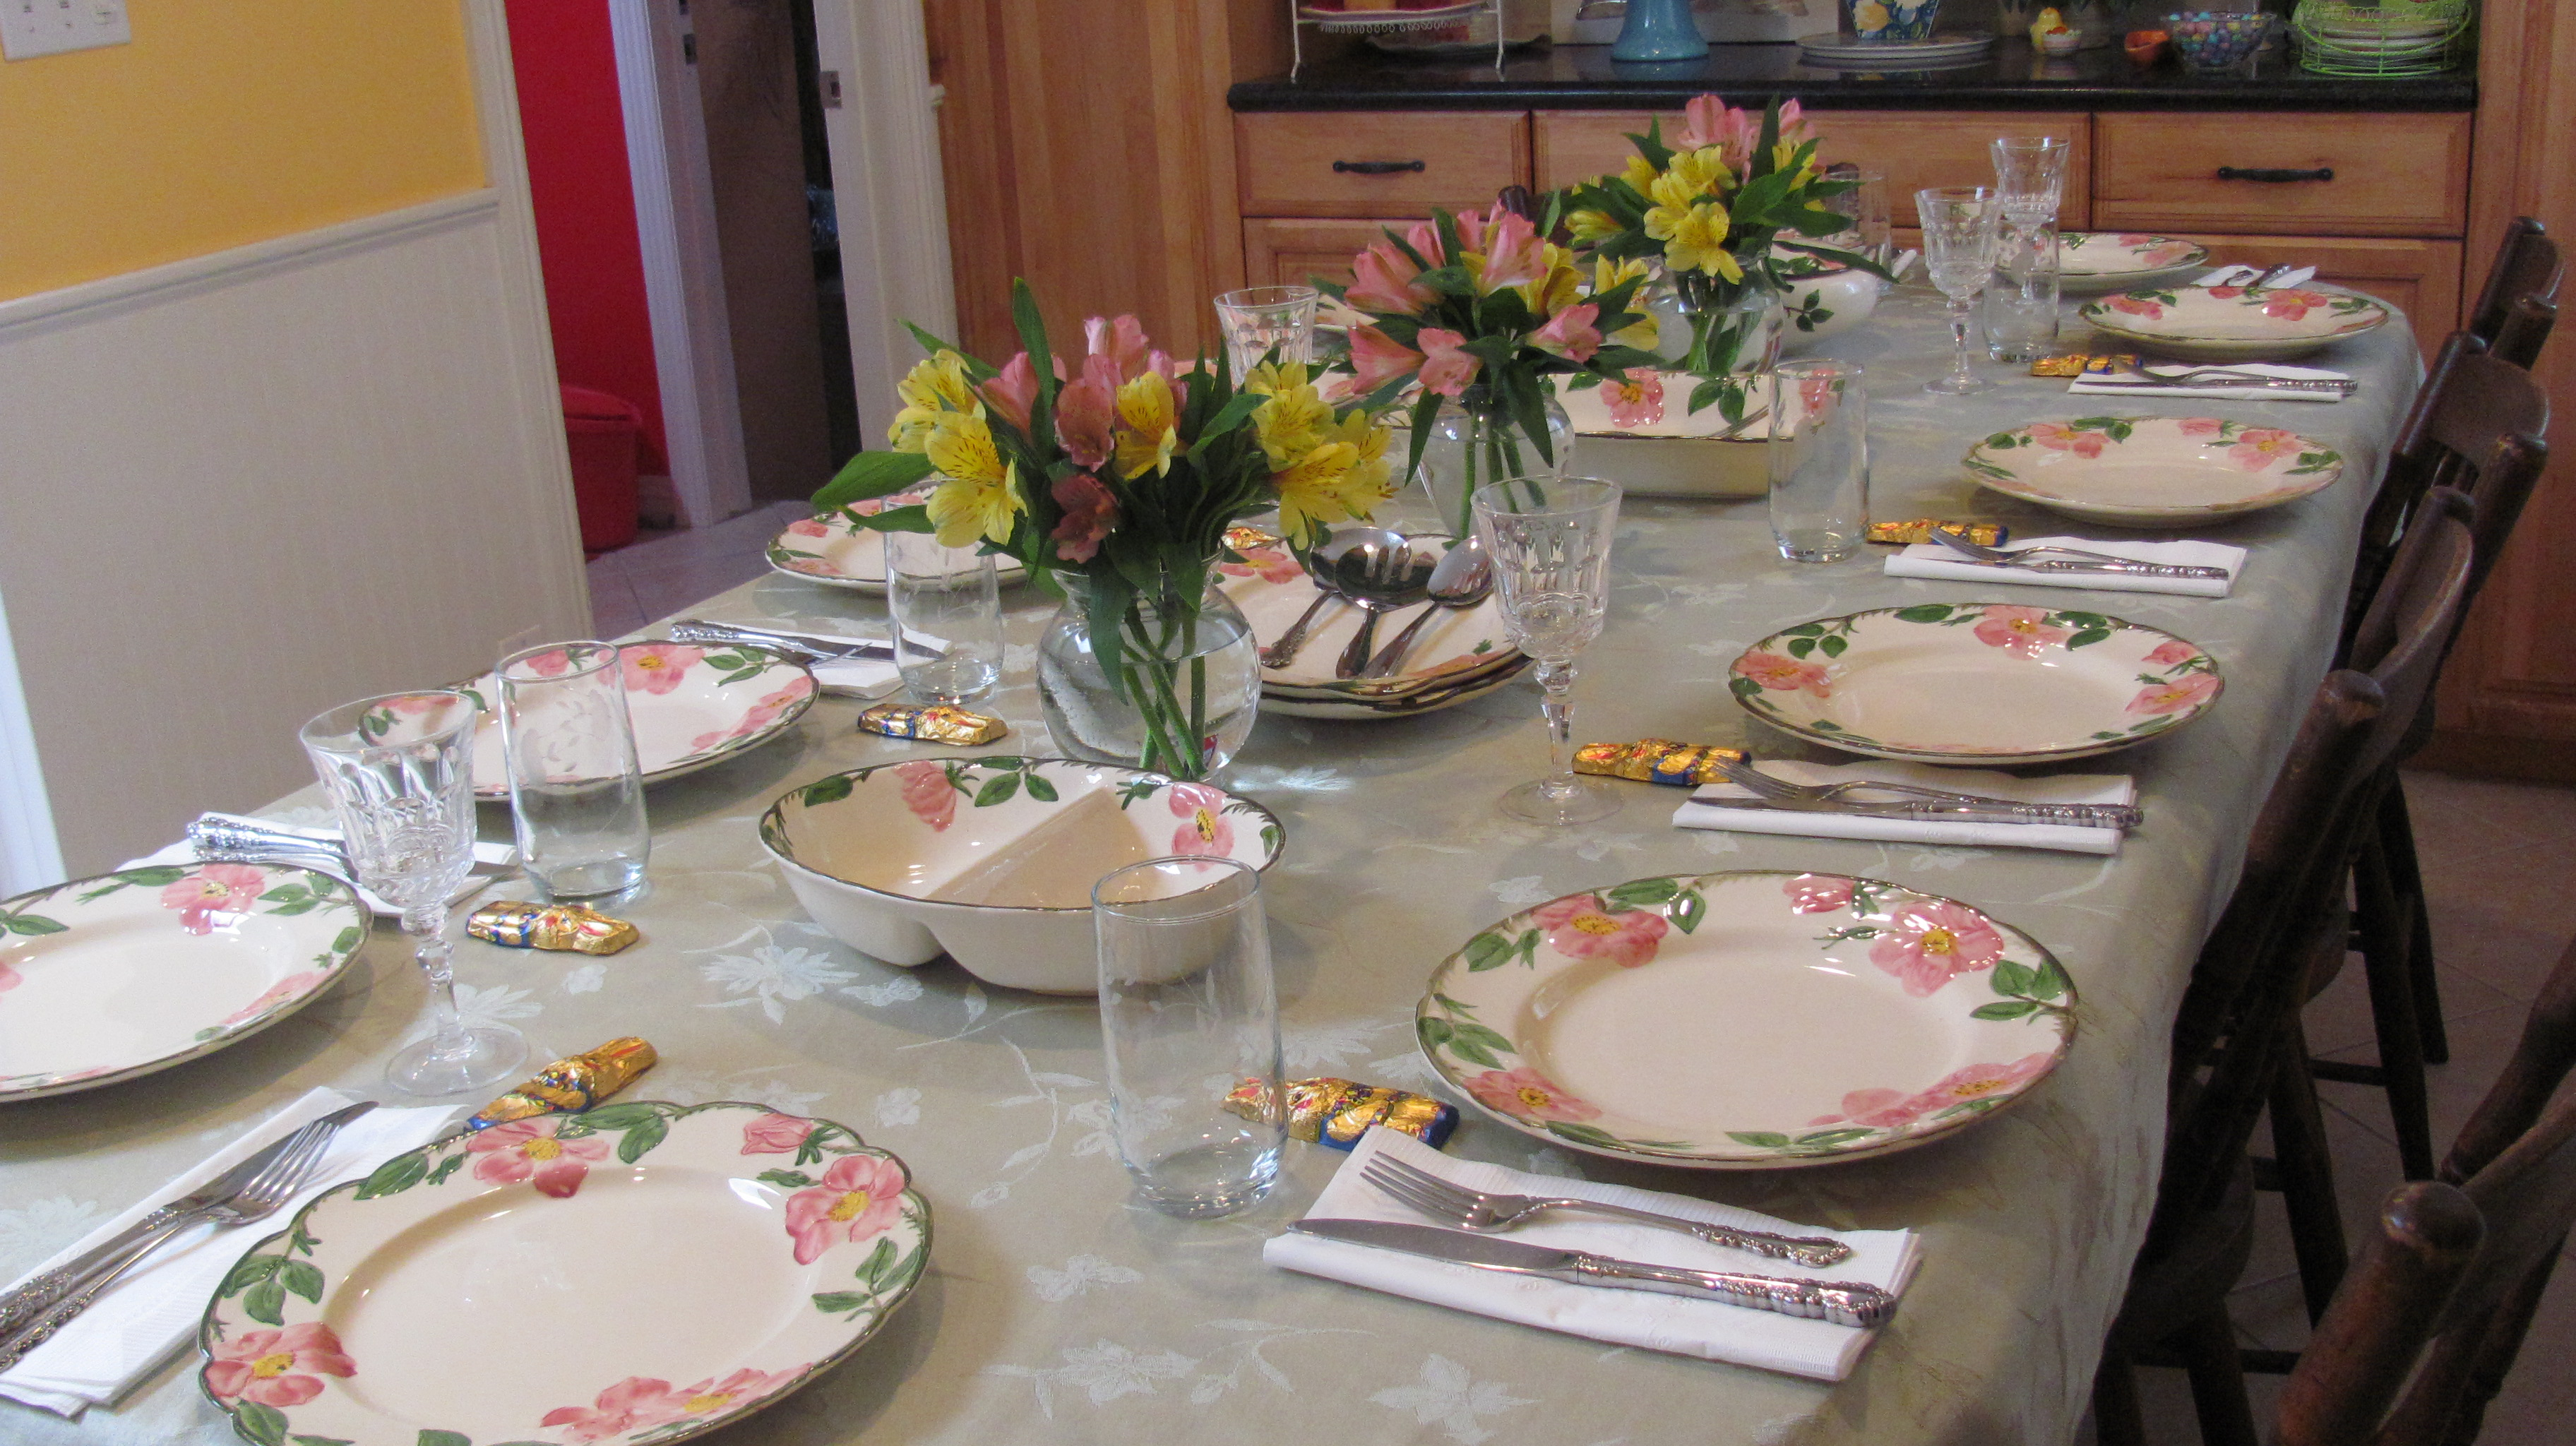 This Easter I Had The Opportunity To Dine At A Home Where There Was A  Beatiful Festival Table Setting Of Pink And Green. Fresh Flowers Lined The  Table.